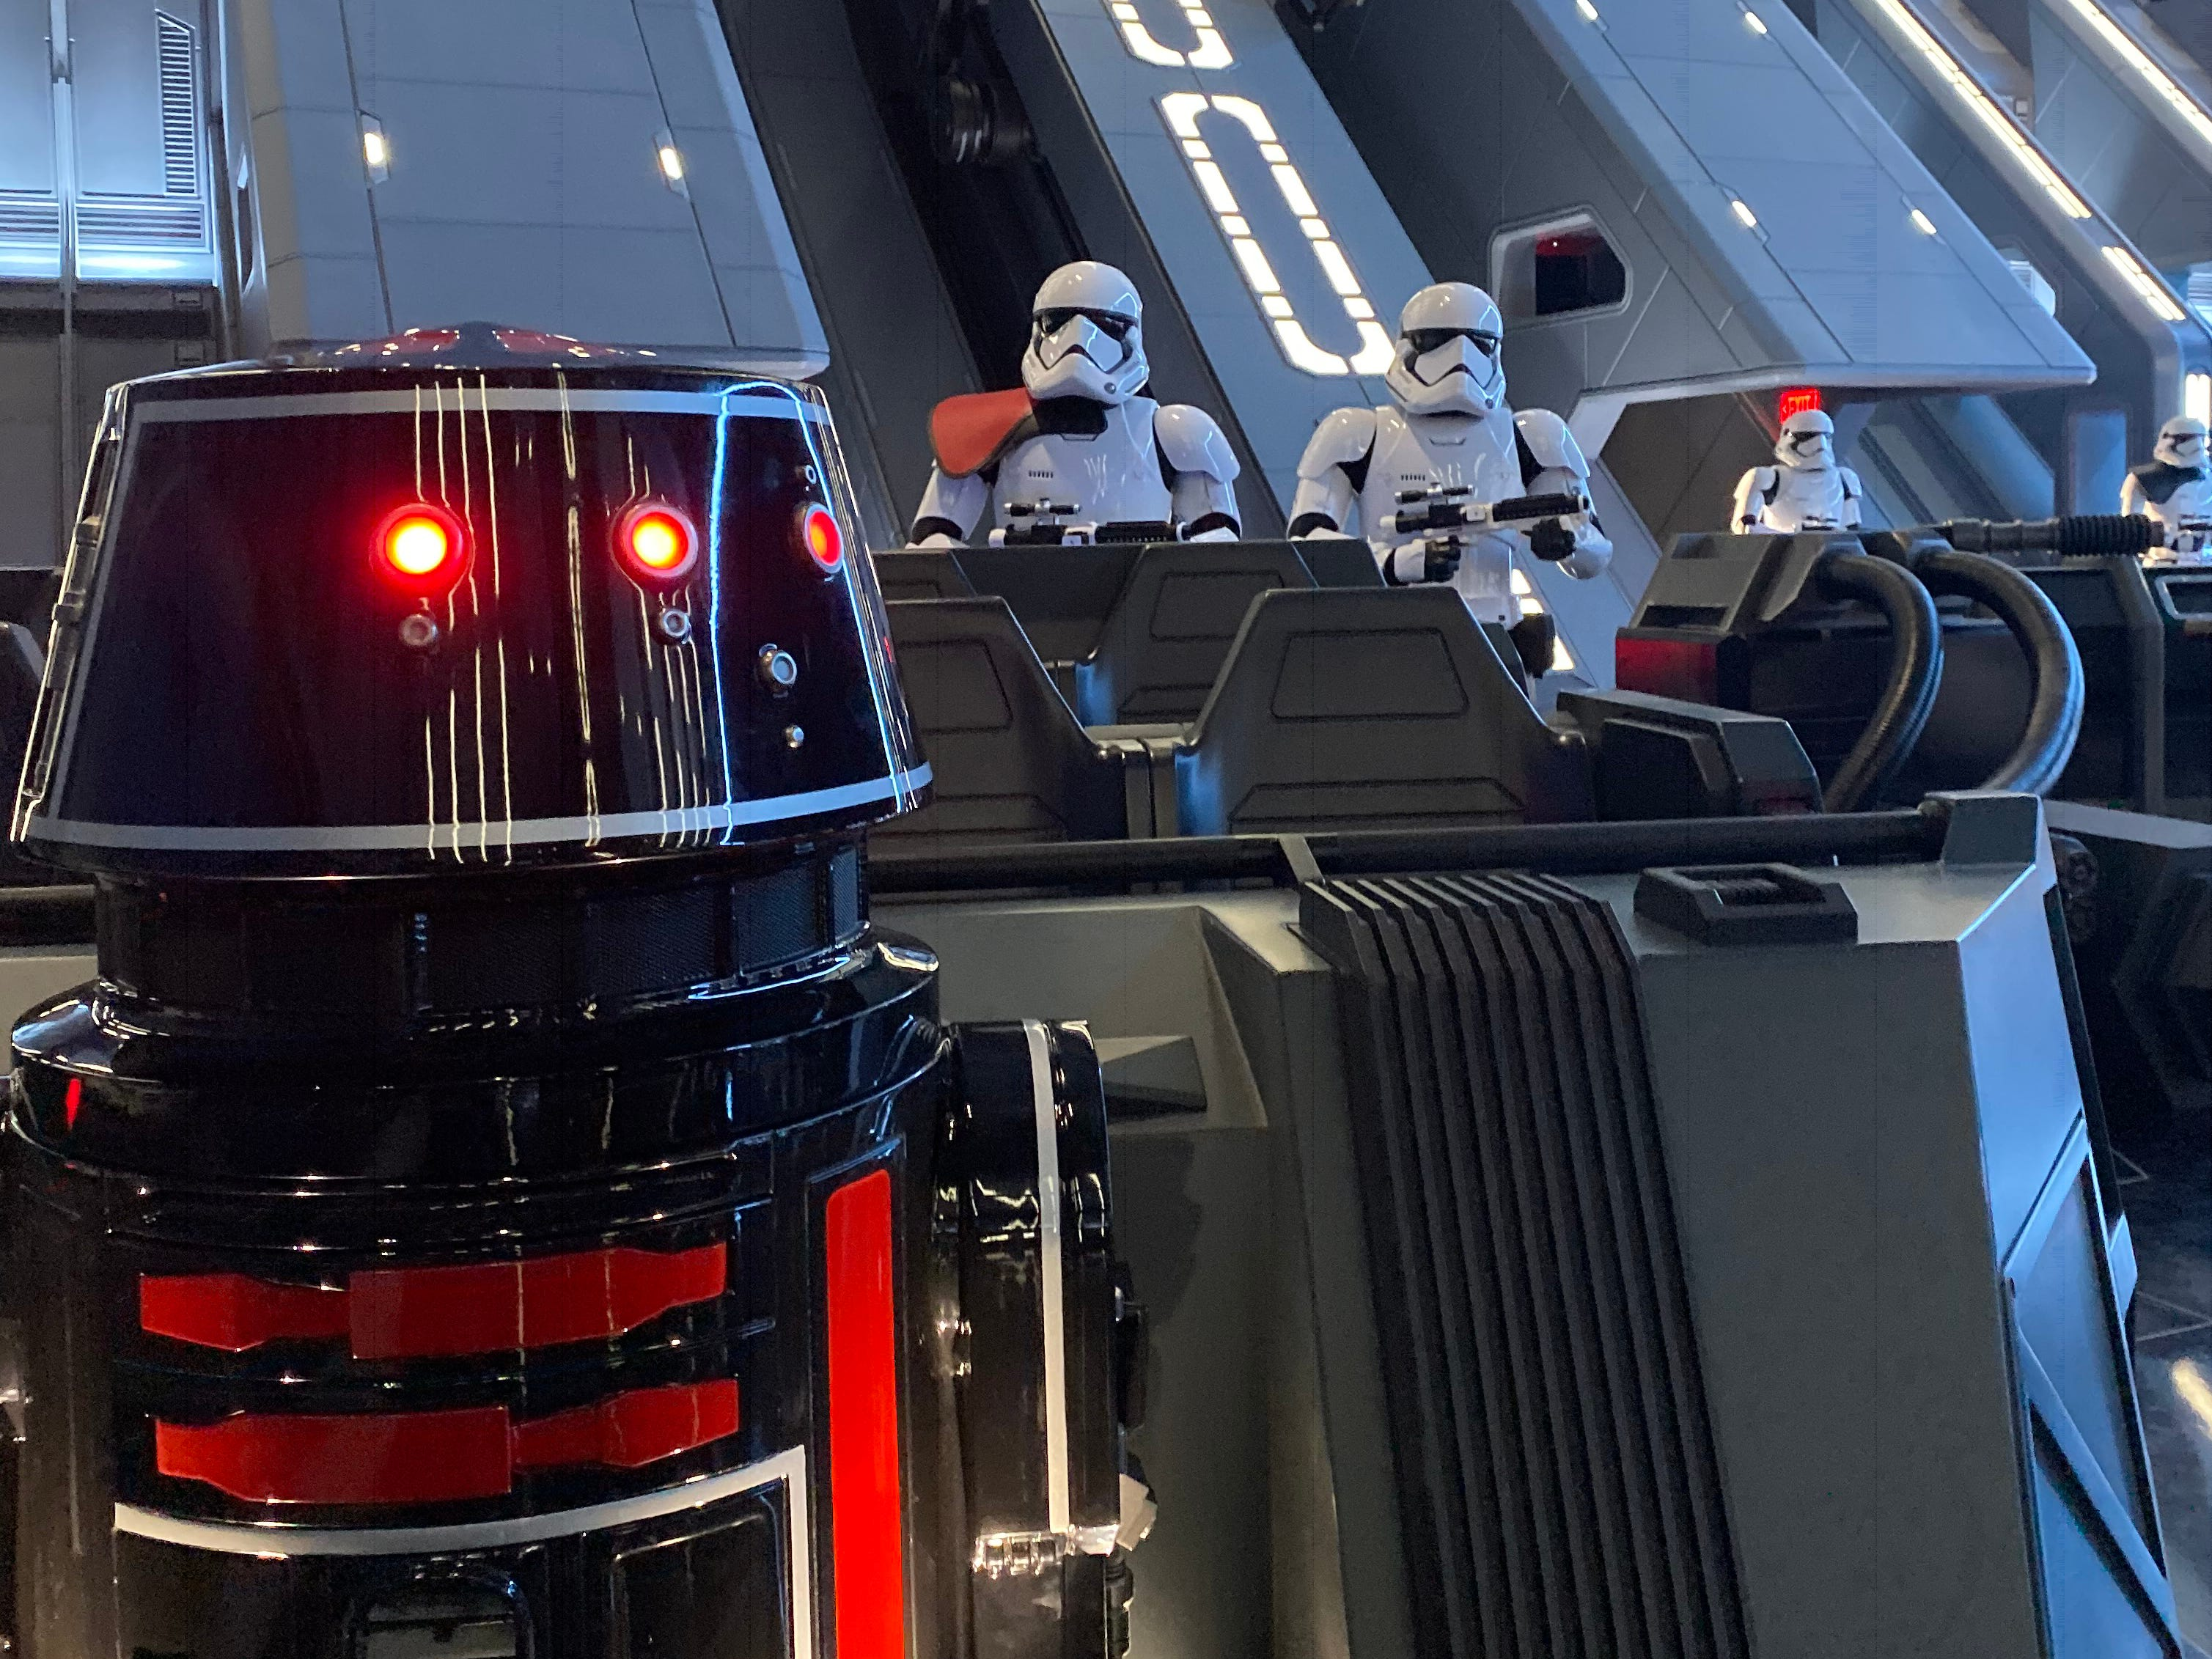 """Slide 23 of 23: Throughout Star Wars: Rise of the Resistance, guests are greeted by characters like Rey, Finn, Kylo Ren, General Hux, and Poe Dameron — all of who are played by the original actors from the current """"Star Wars"""" trilogy.Between these character sightings, the ride takes guests through the hangar bay of a Star Destroyer where they'll find 50 First Order Stormtroopers, some of which are animatronics.Read more:19 Disney rides and attractions that opened this decade — and 11 that closedDisney just dropped a new kitchen collection, and some items cost as little as $820 relaxing things you can do on a Disney World vacation outside of the parksEvery single Disney attraction that opened in the 2010s"""